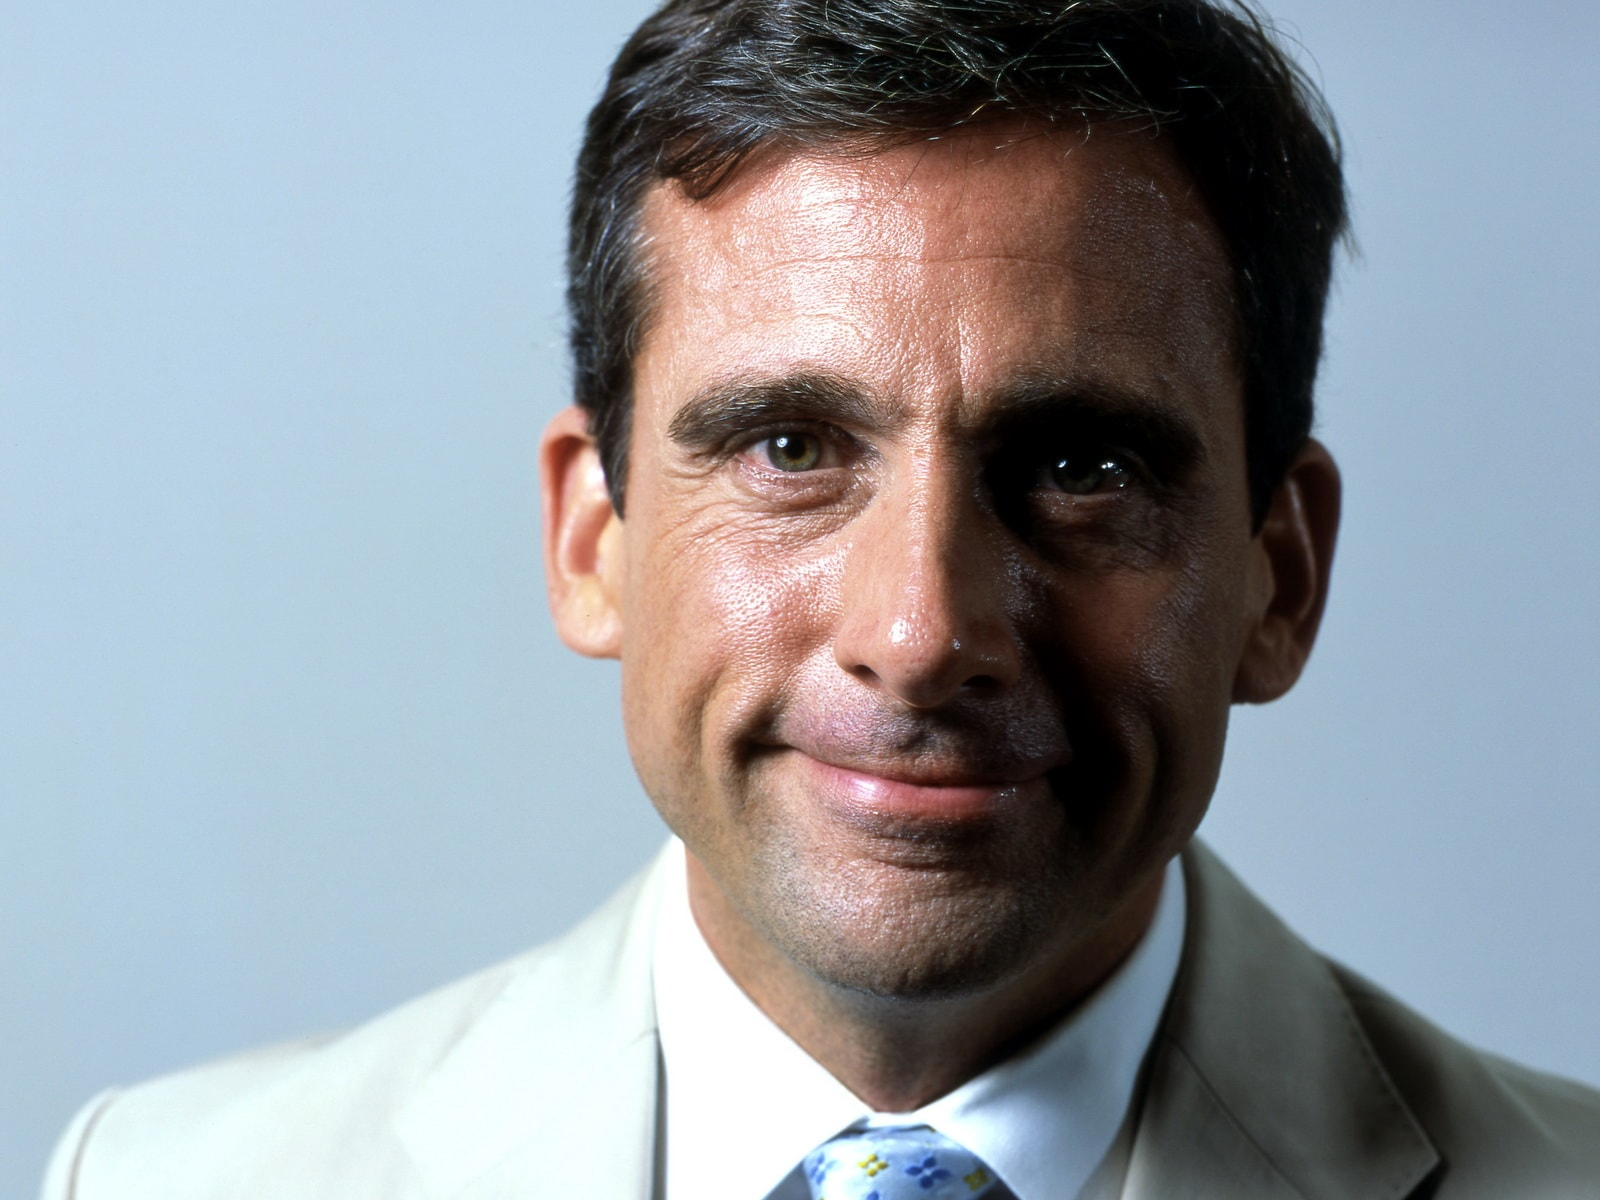 Steve Carell Widescreen for desktop